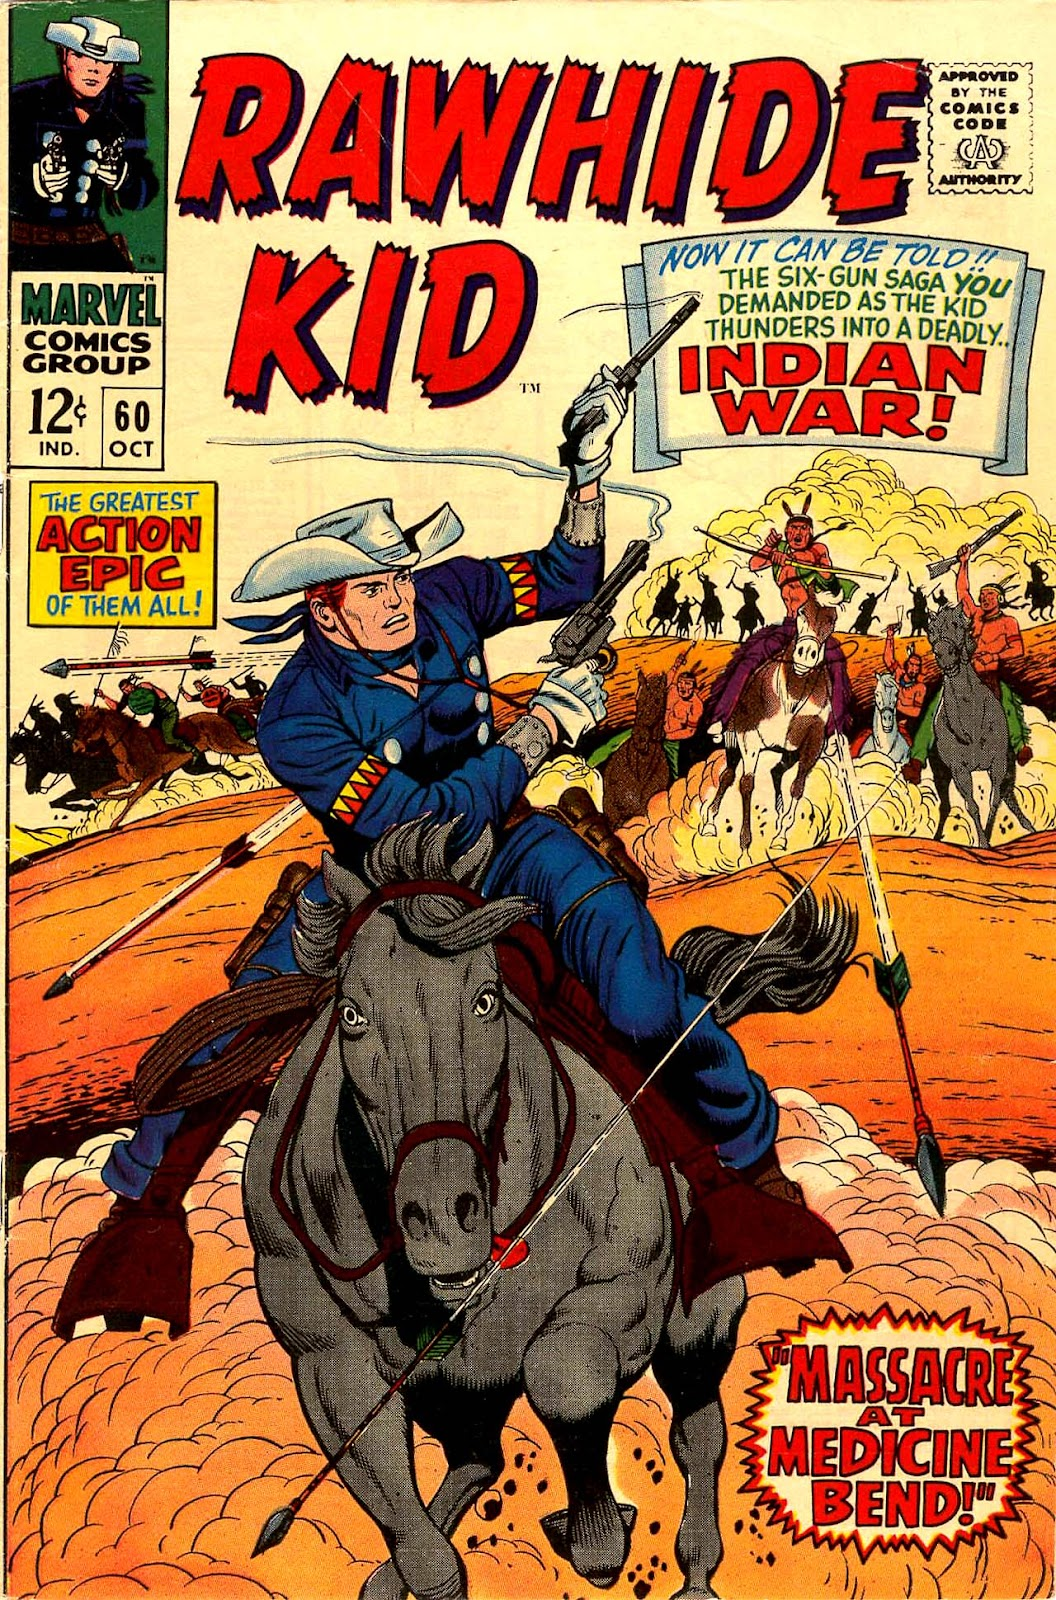 The Rawhide Kid (1955) issue 60 - Page 1